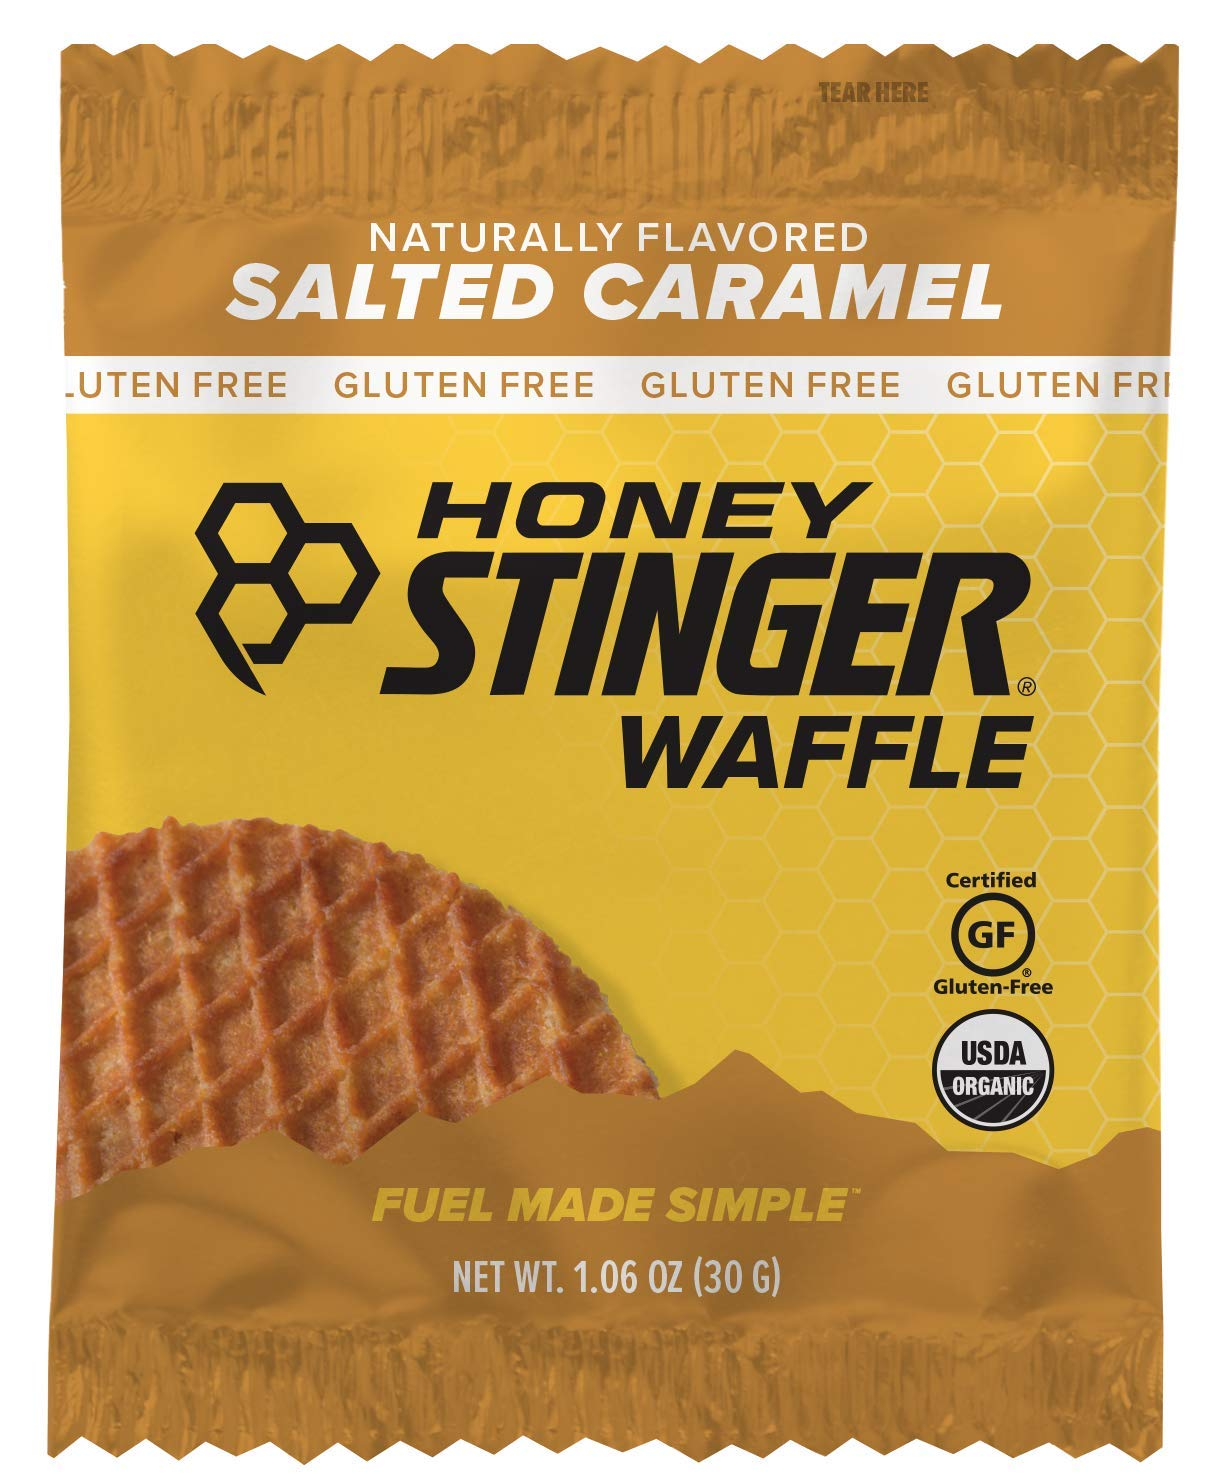 Honey Stinger Organic Gluten Free Waffle, Salted Caramel, Sports Nutrition, 1.06 Ounce (16 Count) by Honey Stinger